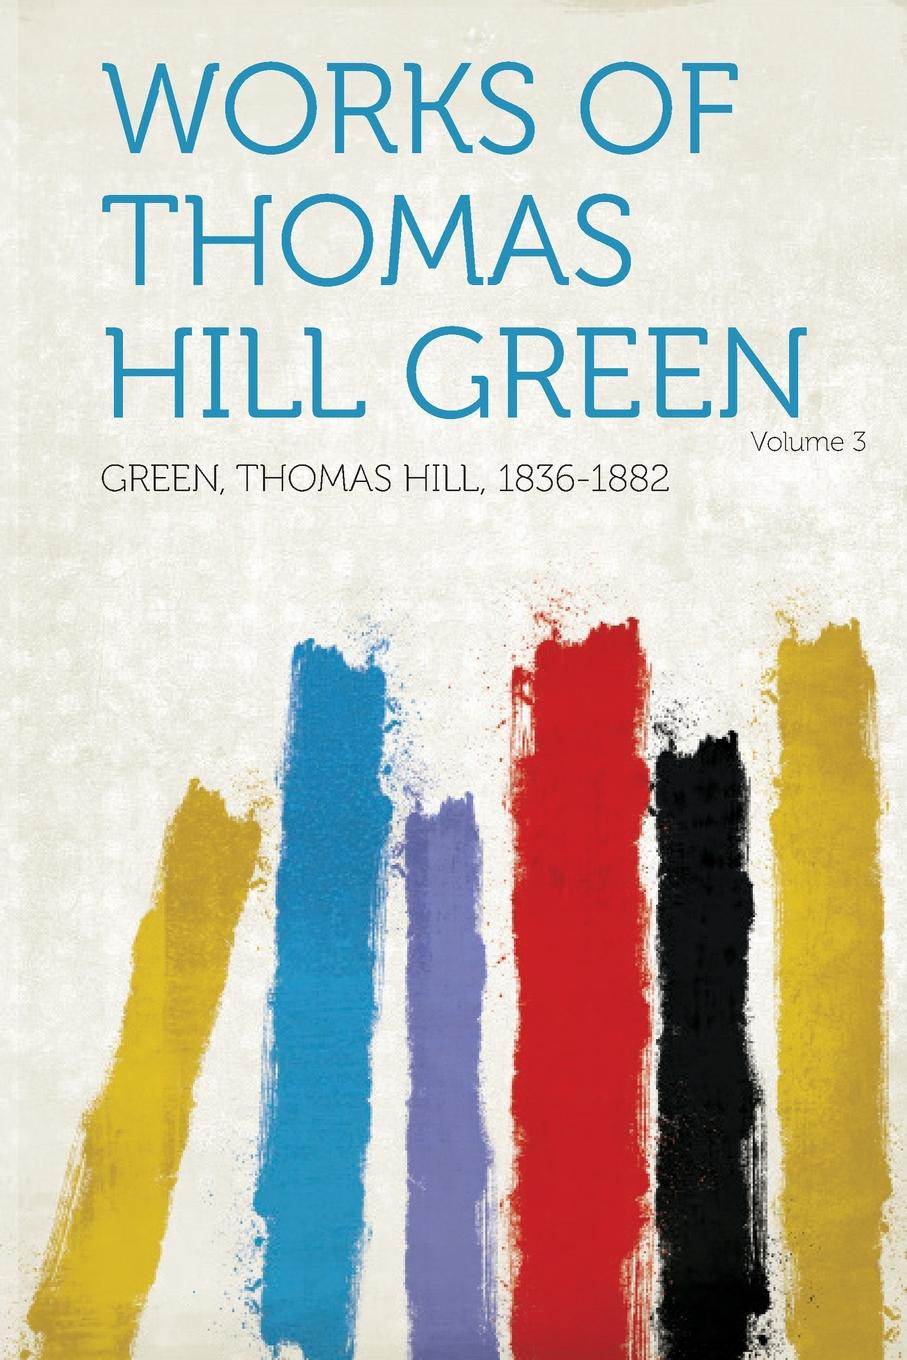 Green Thomas Hill 1836-1882 Works of Volume 3